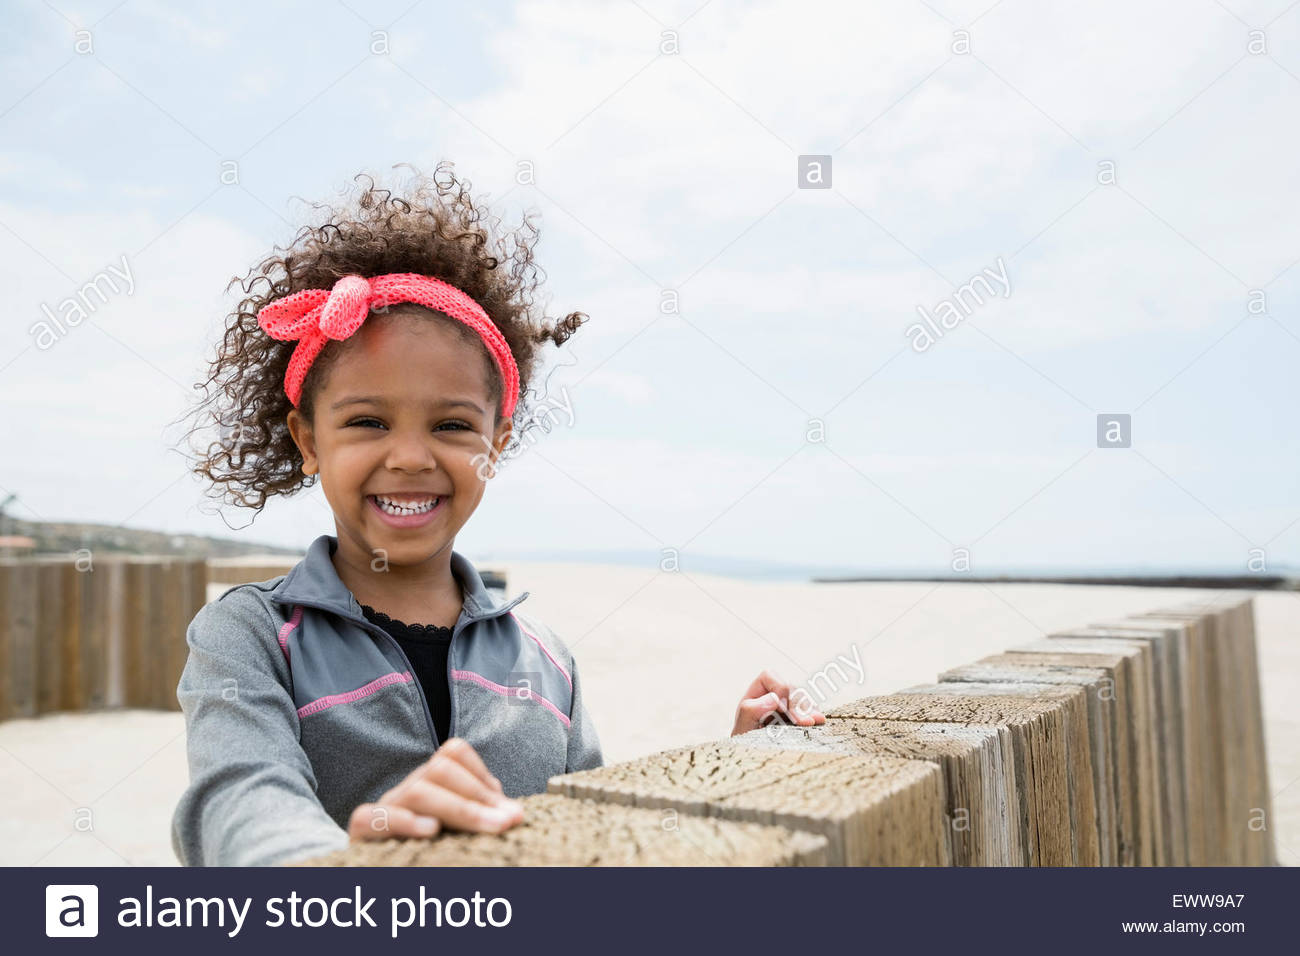 Portrait smiling girl curly hair at beach wall - Stock Image